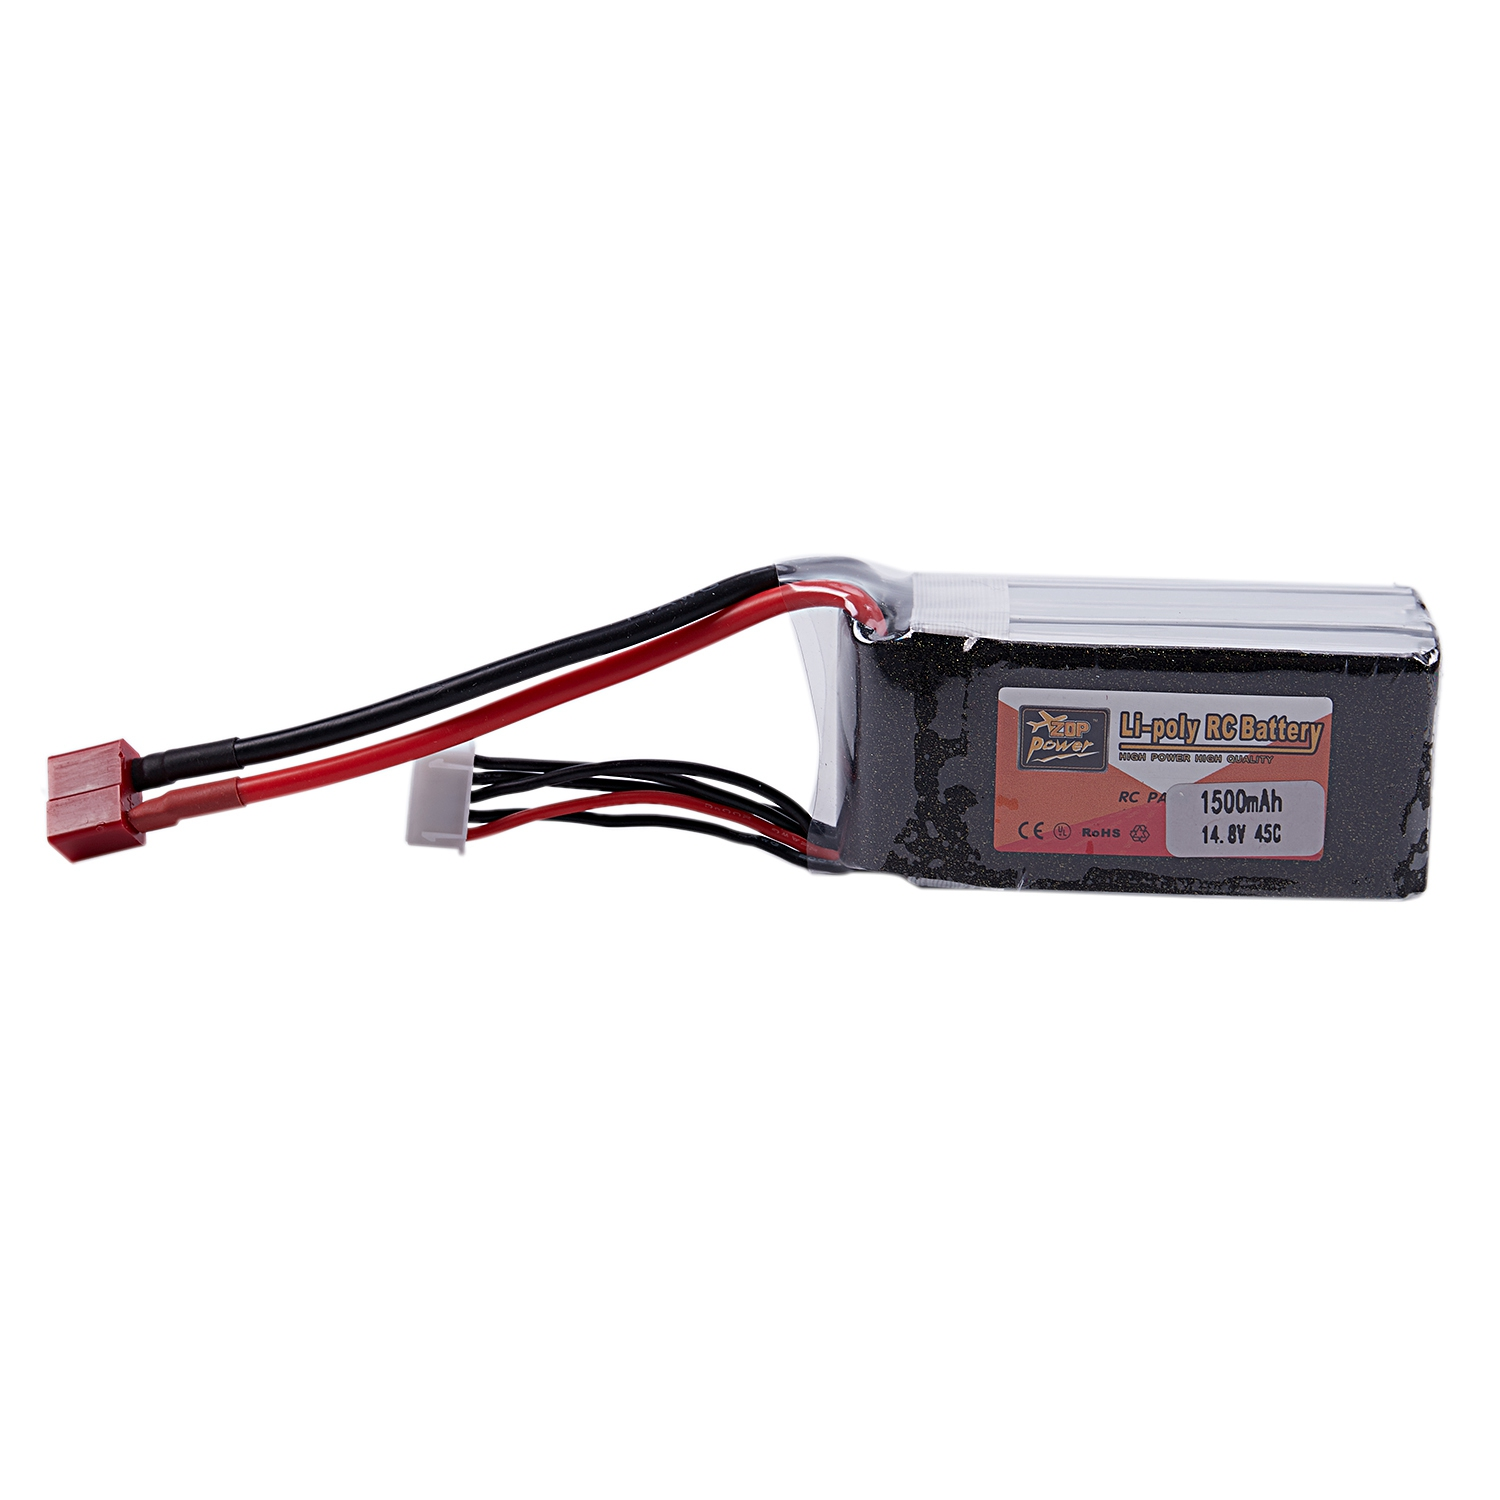 ZOP POWER 14.8V 1500Mah 45C 4S 1P Lipo Battery Xt60 Plug Rechargeable For Rc Racing Drone Quadcopter Helicopter Car Boat